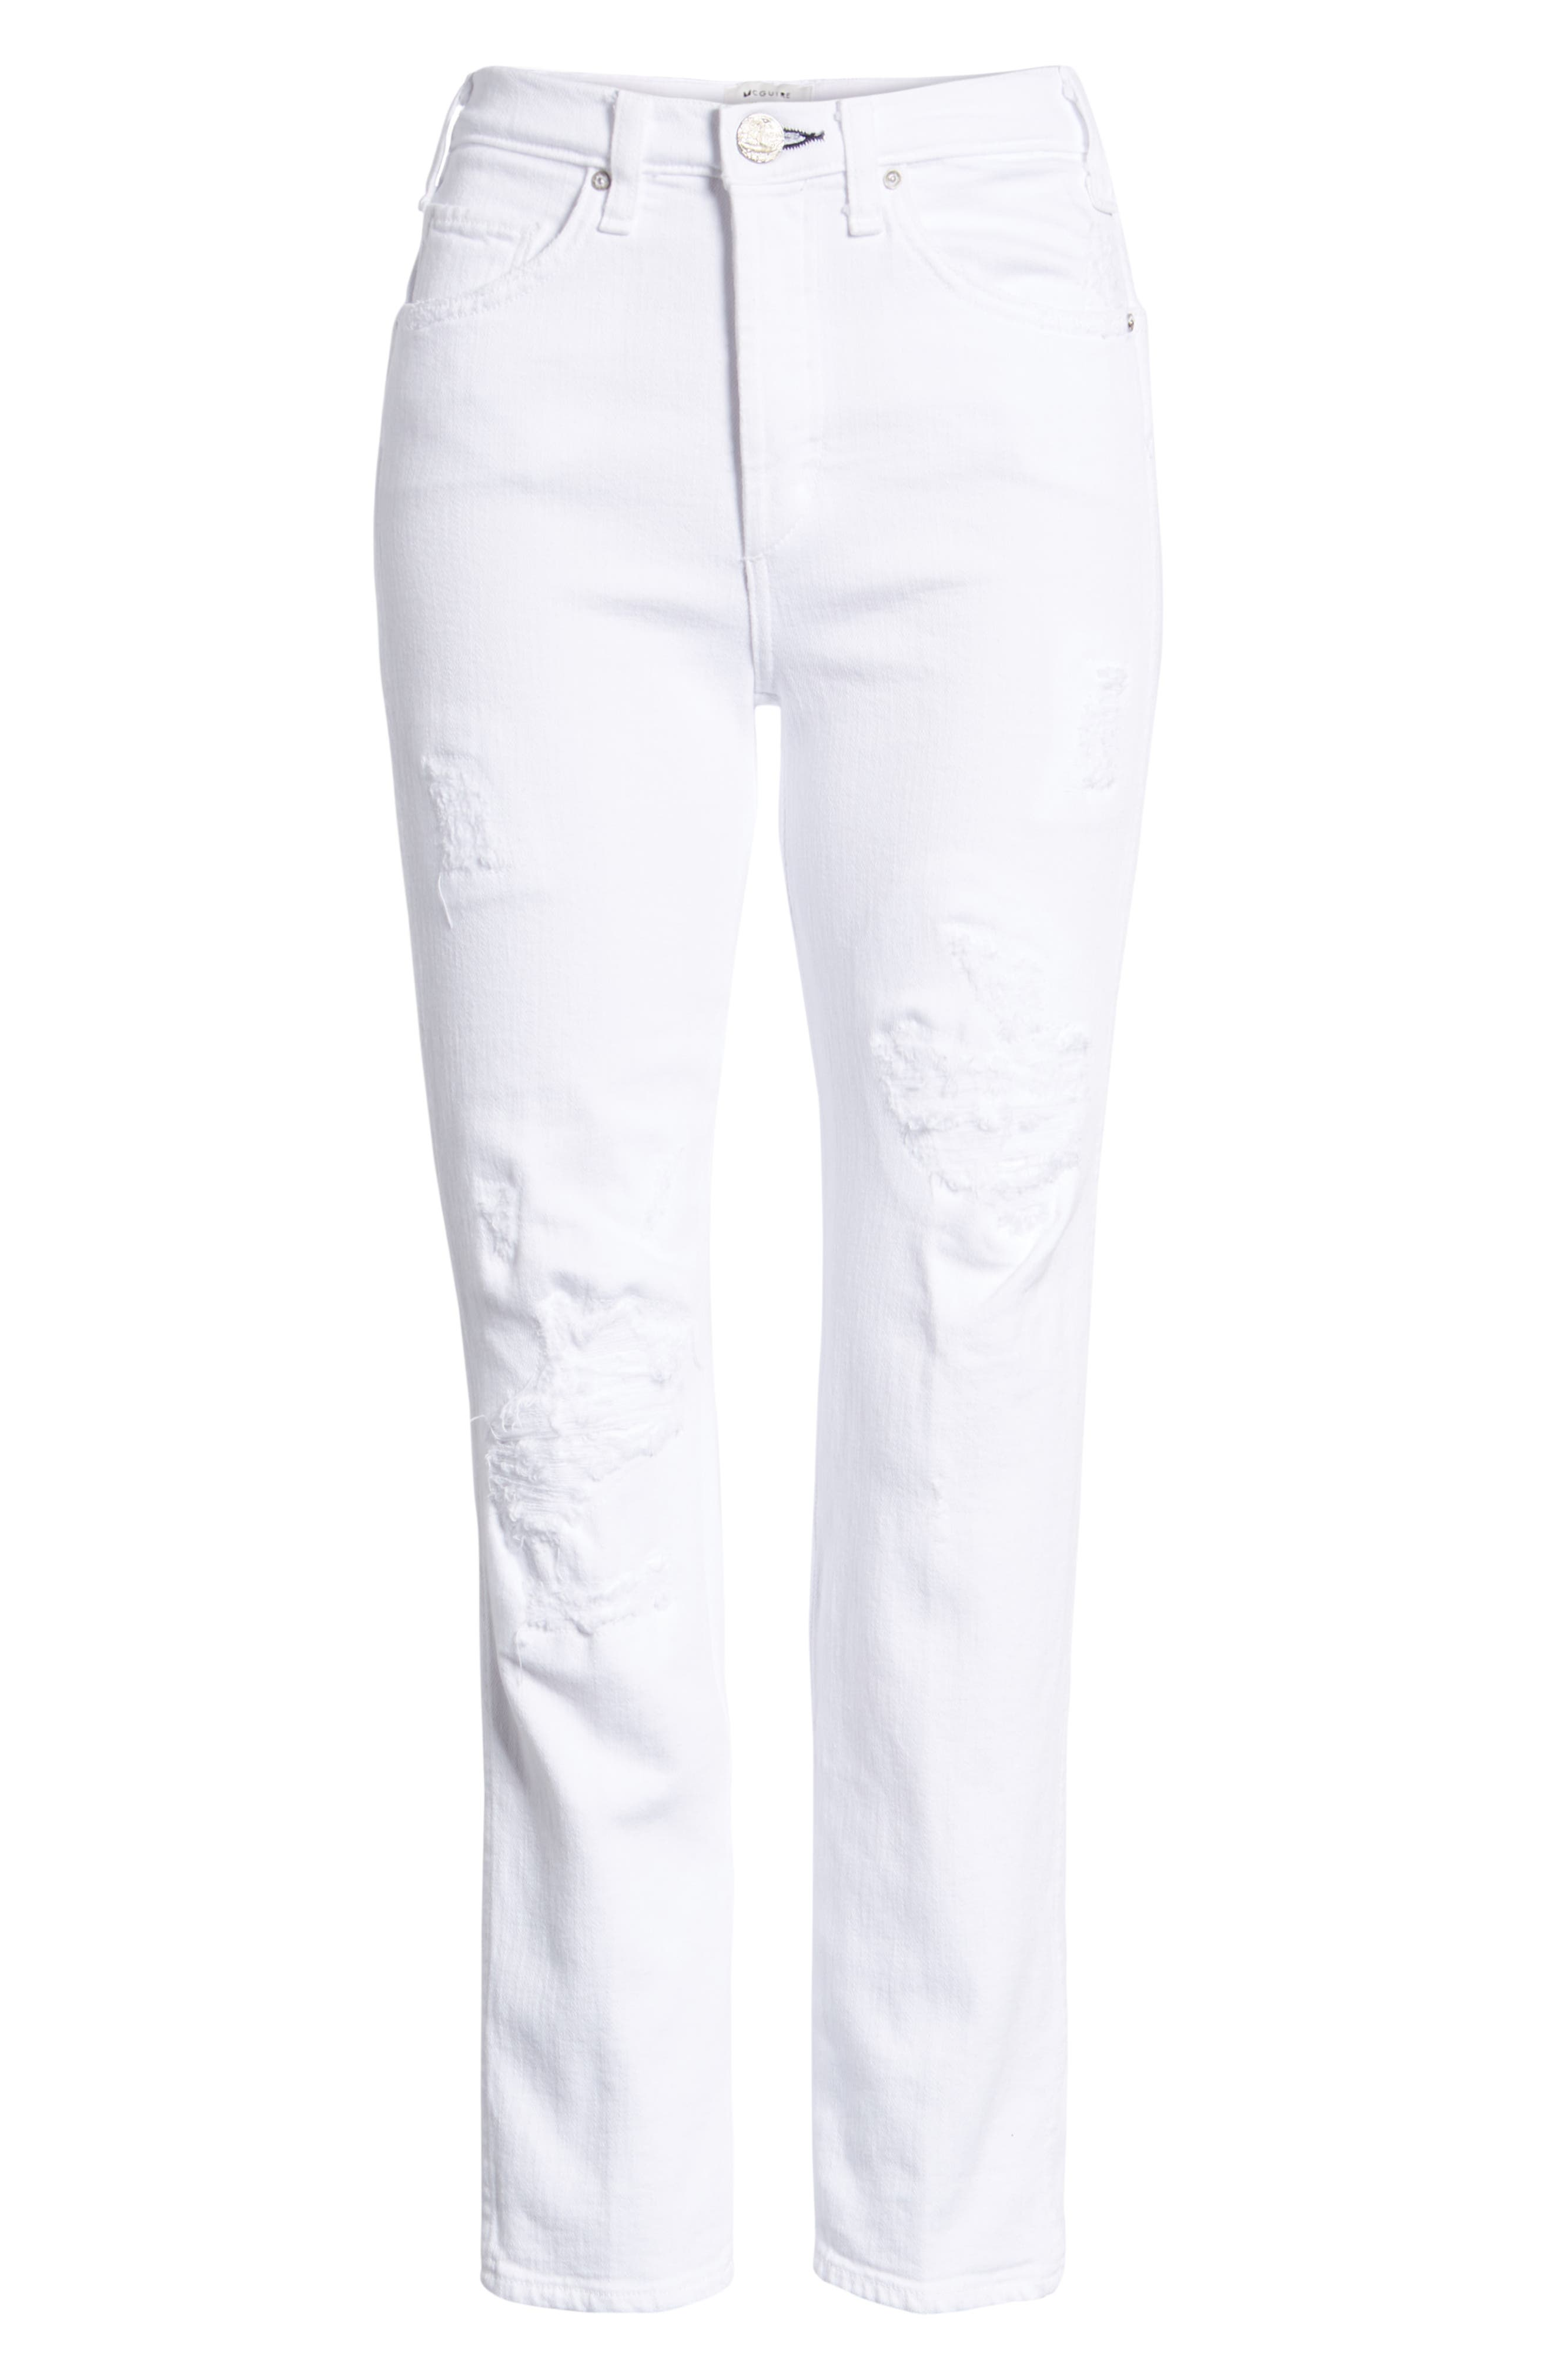 Kaia Distressed High Waist Slim Jeans,                             Alternate thumbnail 7, color,                             Riders In The Sky